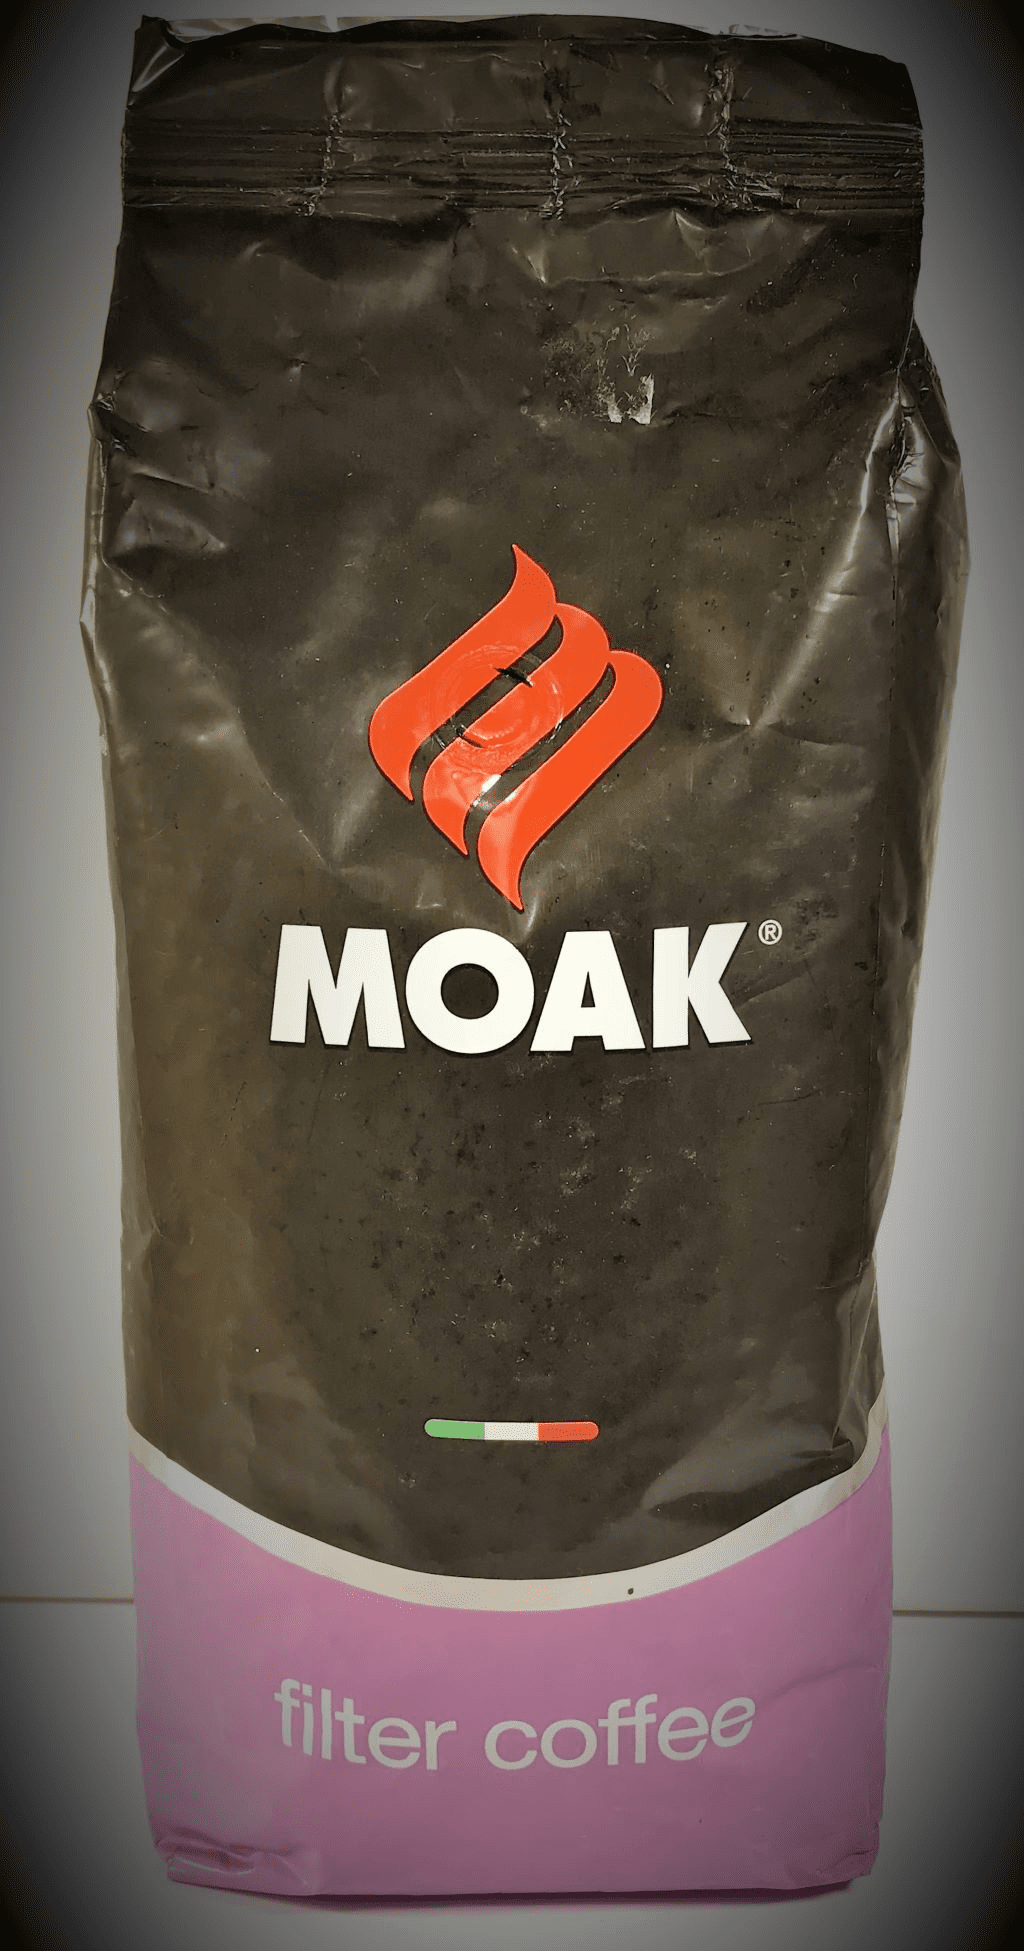 Moka Ground Filter Coffee Imported from Italy - 2.2 LBS